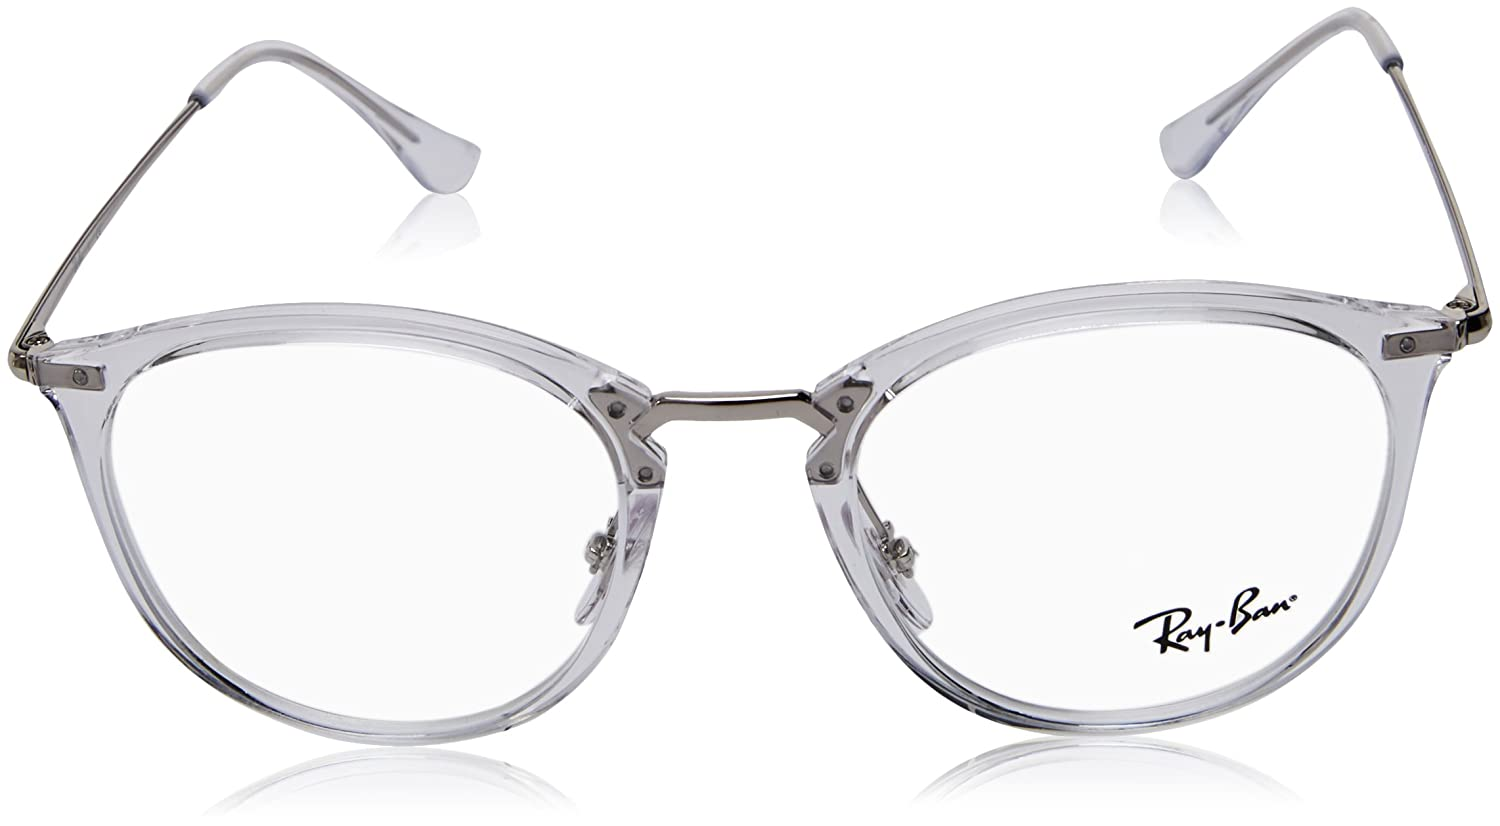 9962725f55 Amazon.com  Ray-Ban 0rx7140 No Polarization Square Prescription Eyewear  Frame Transparent 49 mm  Clothing